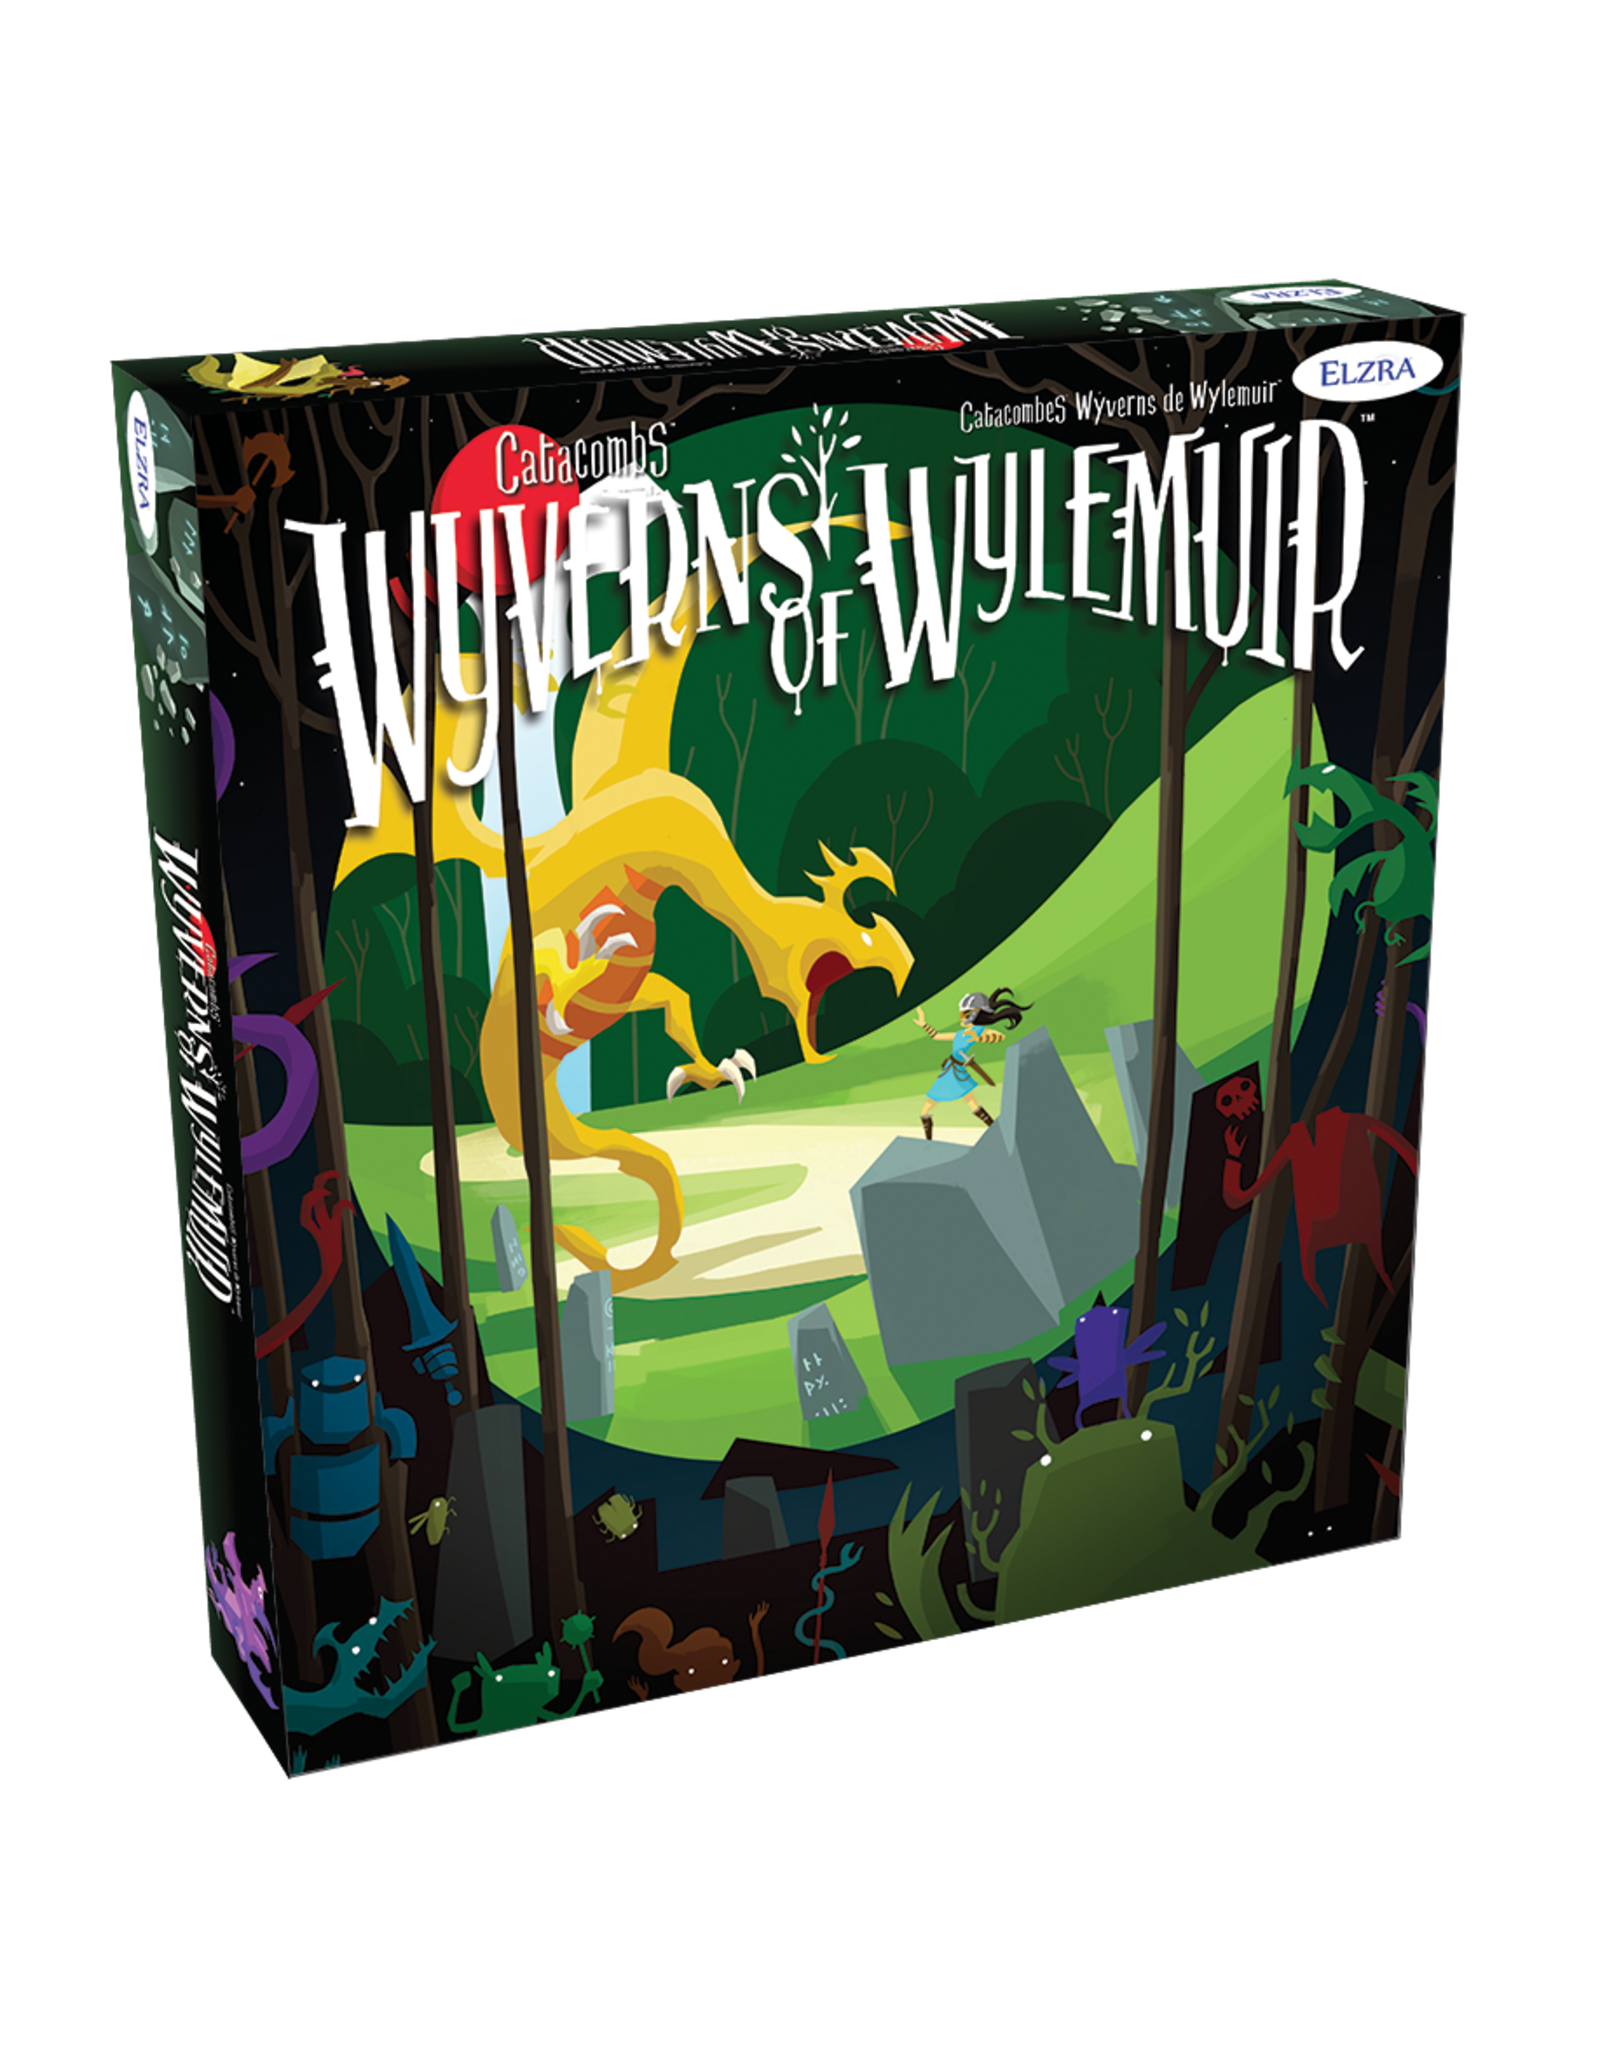 Elzra SALE Catacombs: Wyverns of Wylemuir Expansion